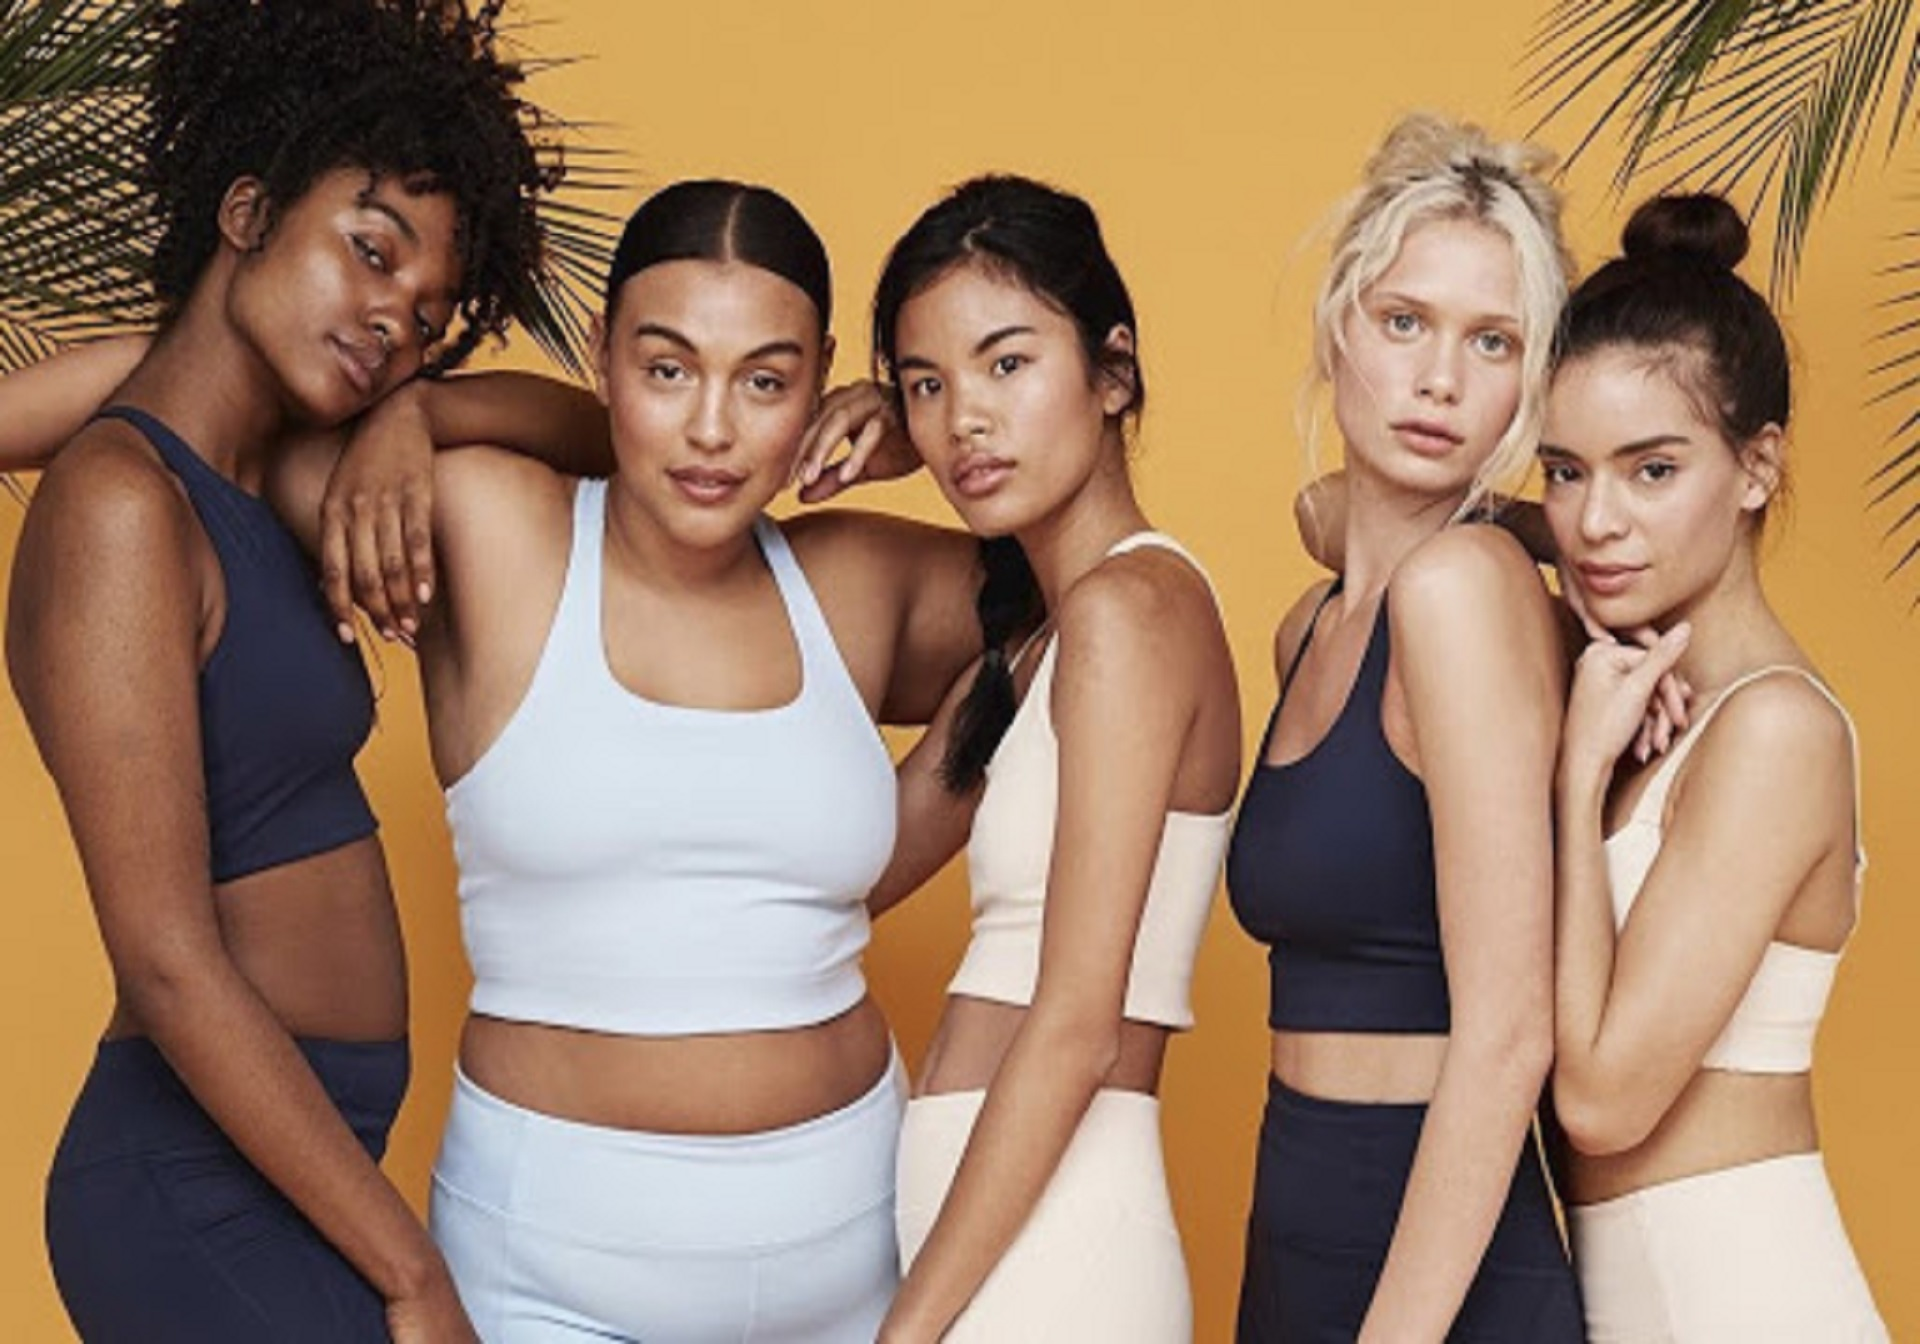 Fashion Trends: Why Size Inclusivity Matters